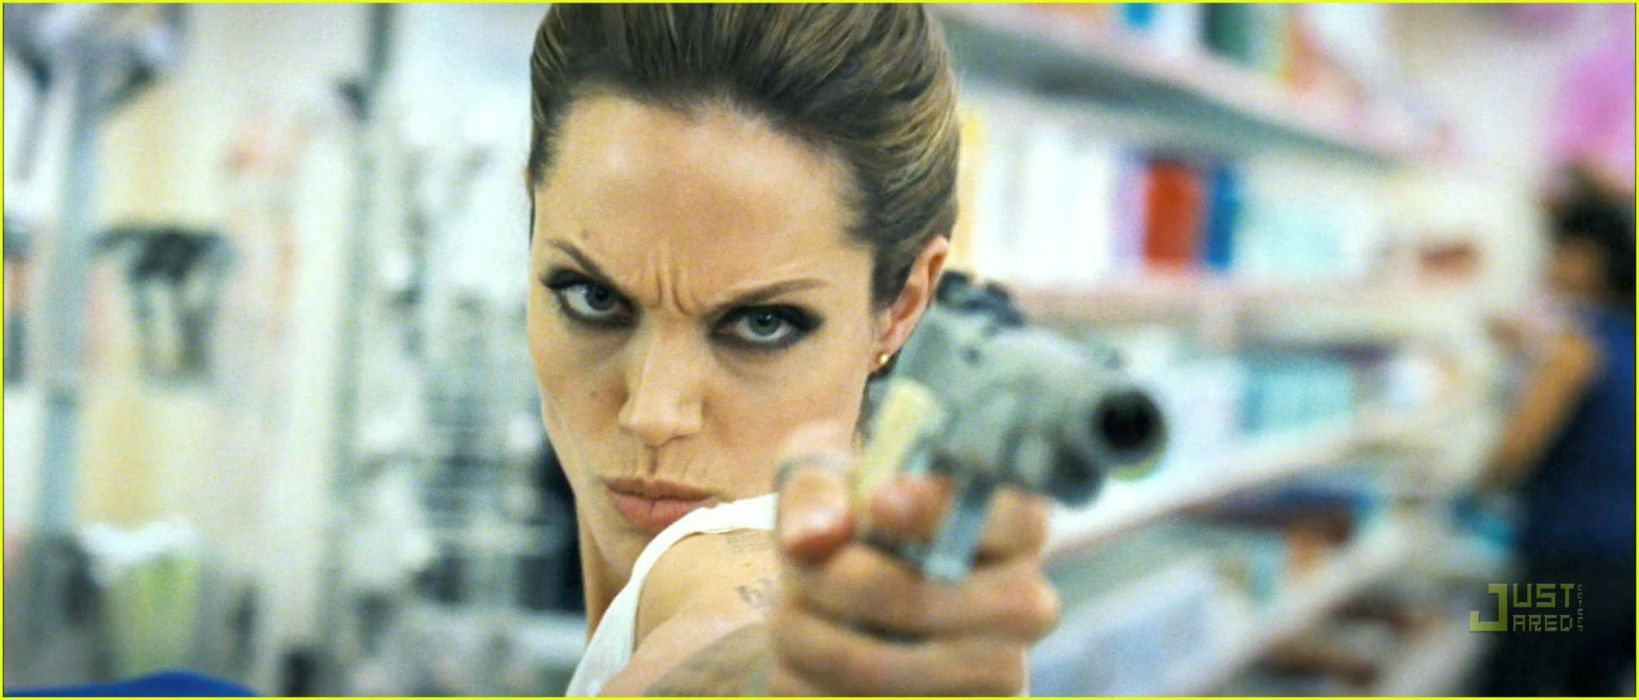 WANTED action crime fantasy sci-fi jolie (45) wallpaper